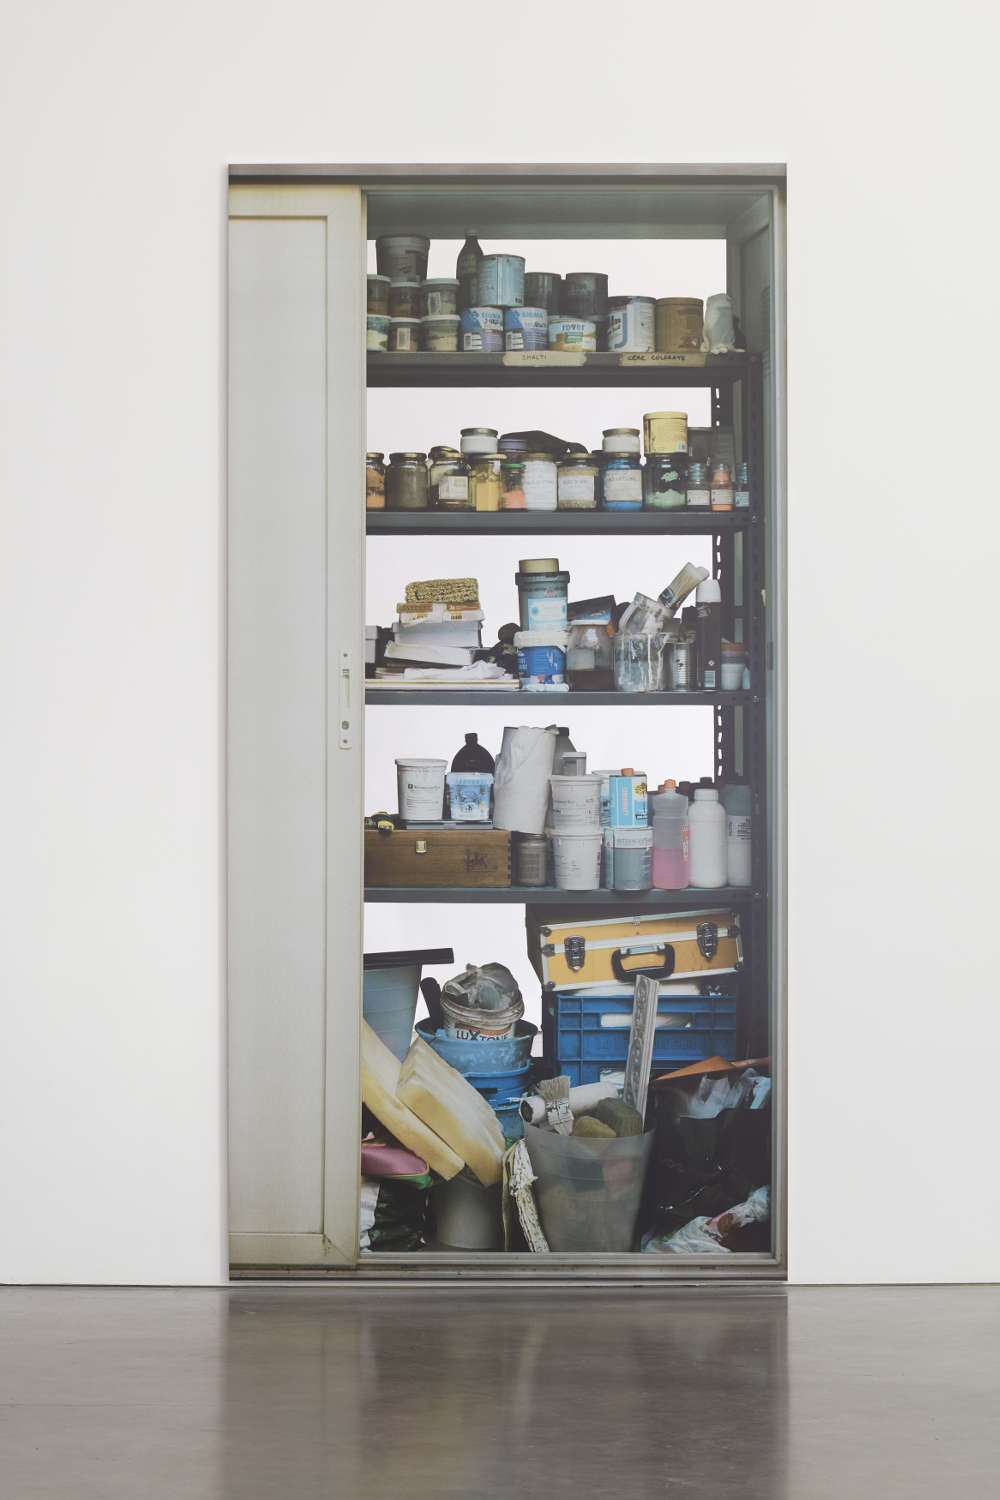 Michelangelo Pistoletto, Scaffali - con porta a sinistra (Shelves – with a door to the left), 2015. Silkscreen on super mirror polished stainless steel 250 x 125 cm (98 3/8 x 49 1/4 in.)